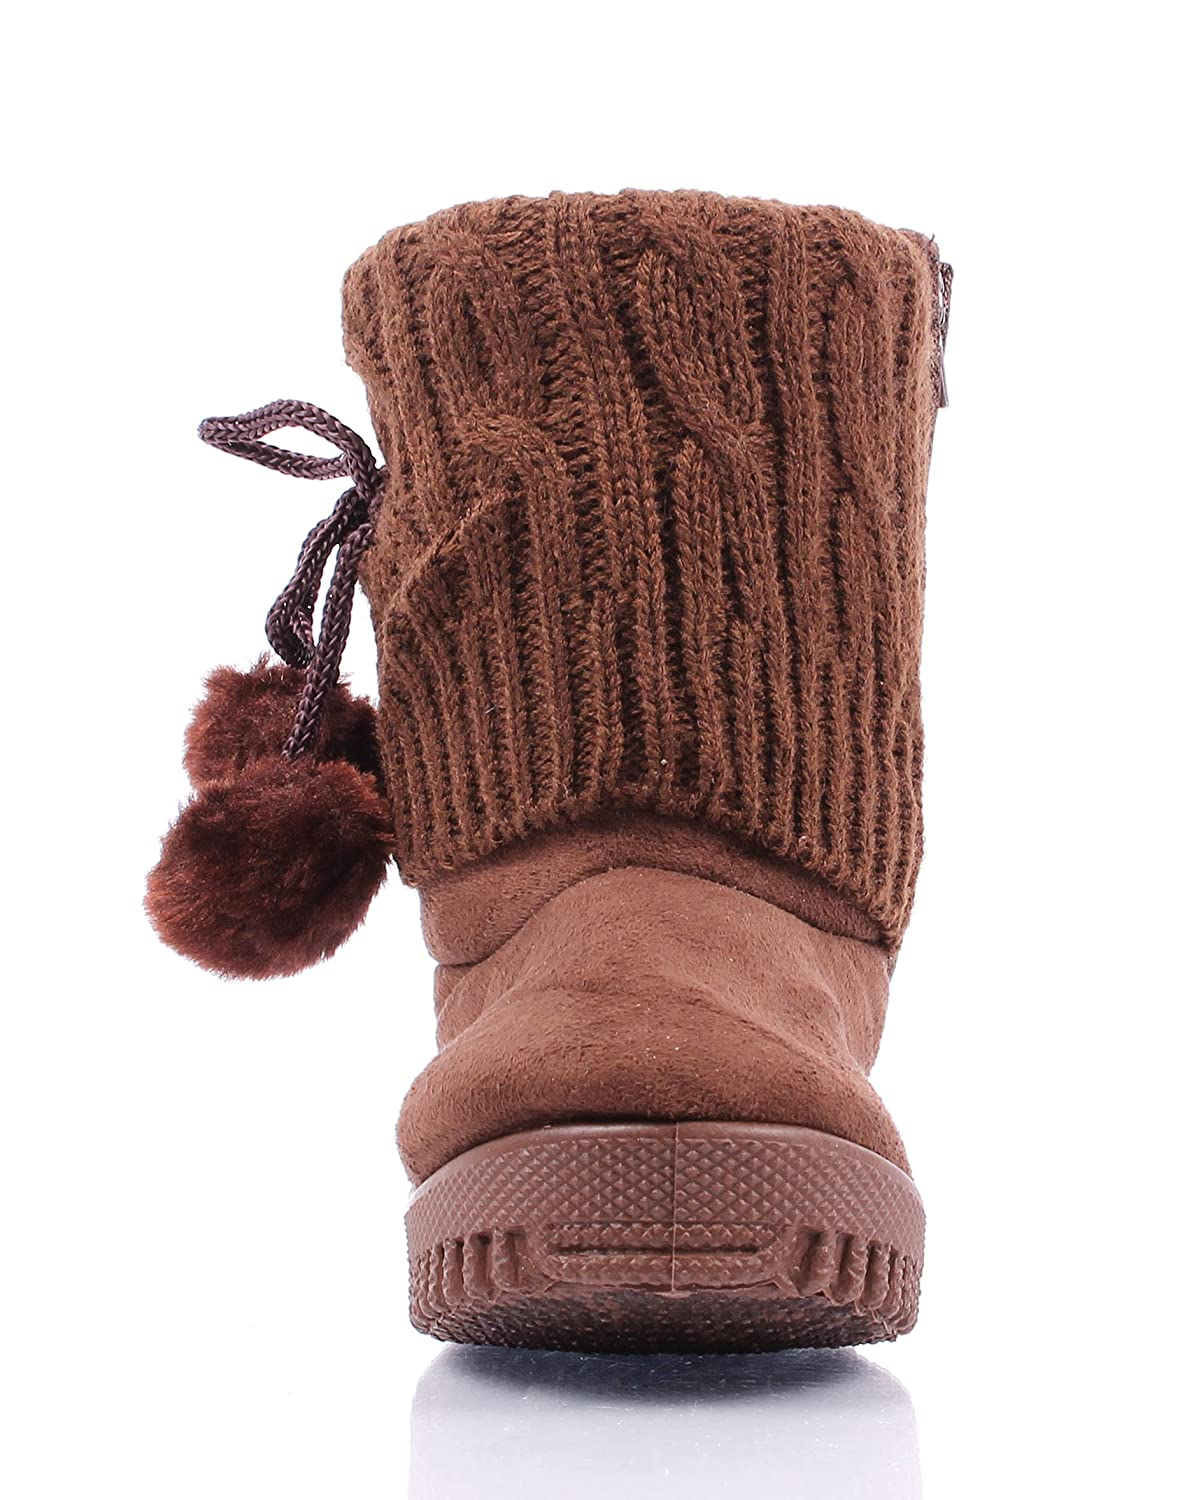 weyoh New Cute Faux Suede Pom Pom Casual Zipper Booties Toddlers Kids Girls Winter Boots New Without Box